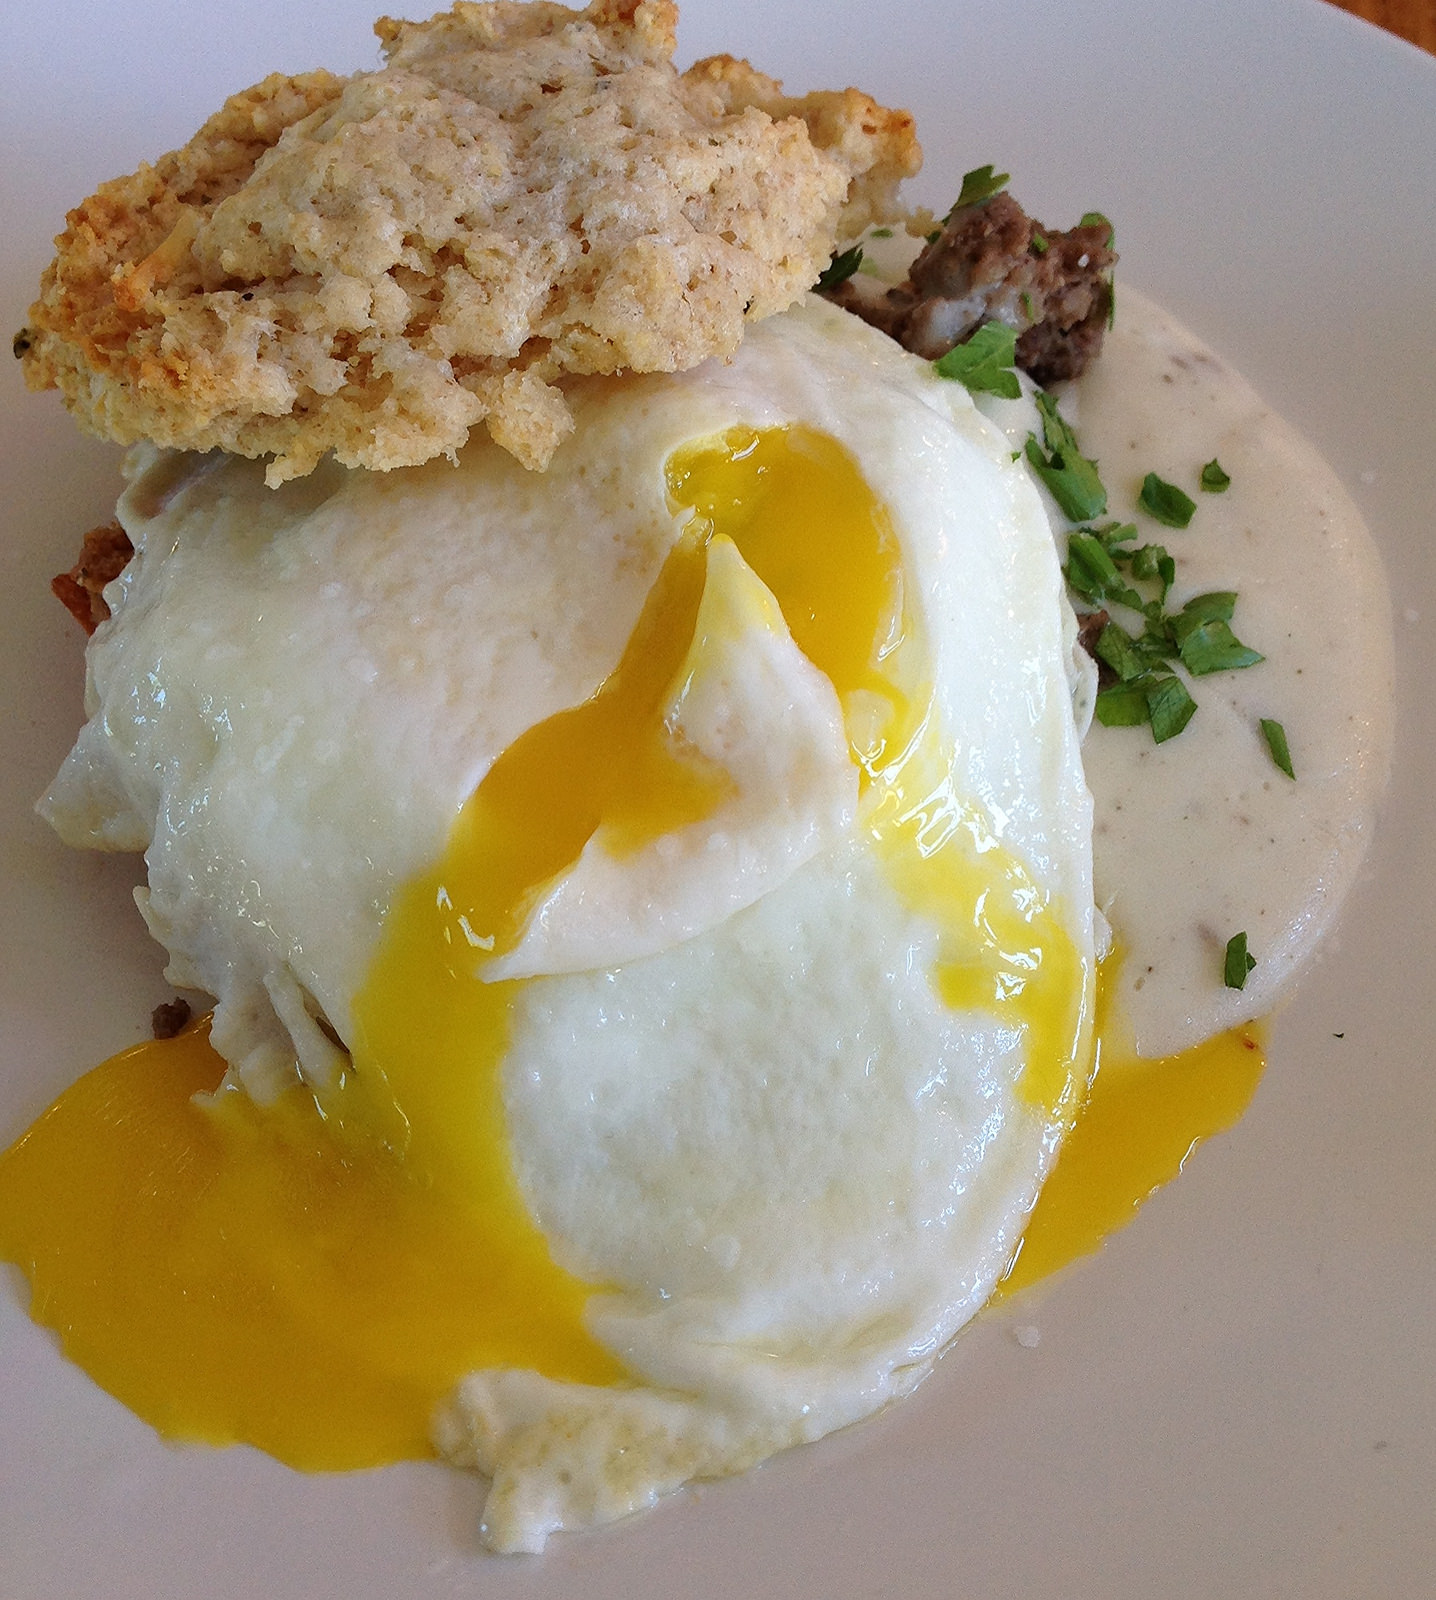 Savory scone, with country gravy and a runny egg